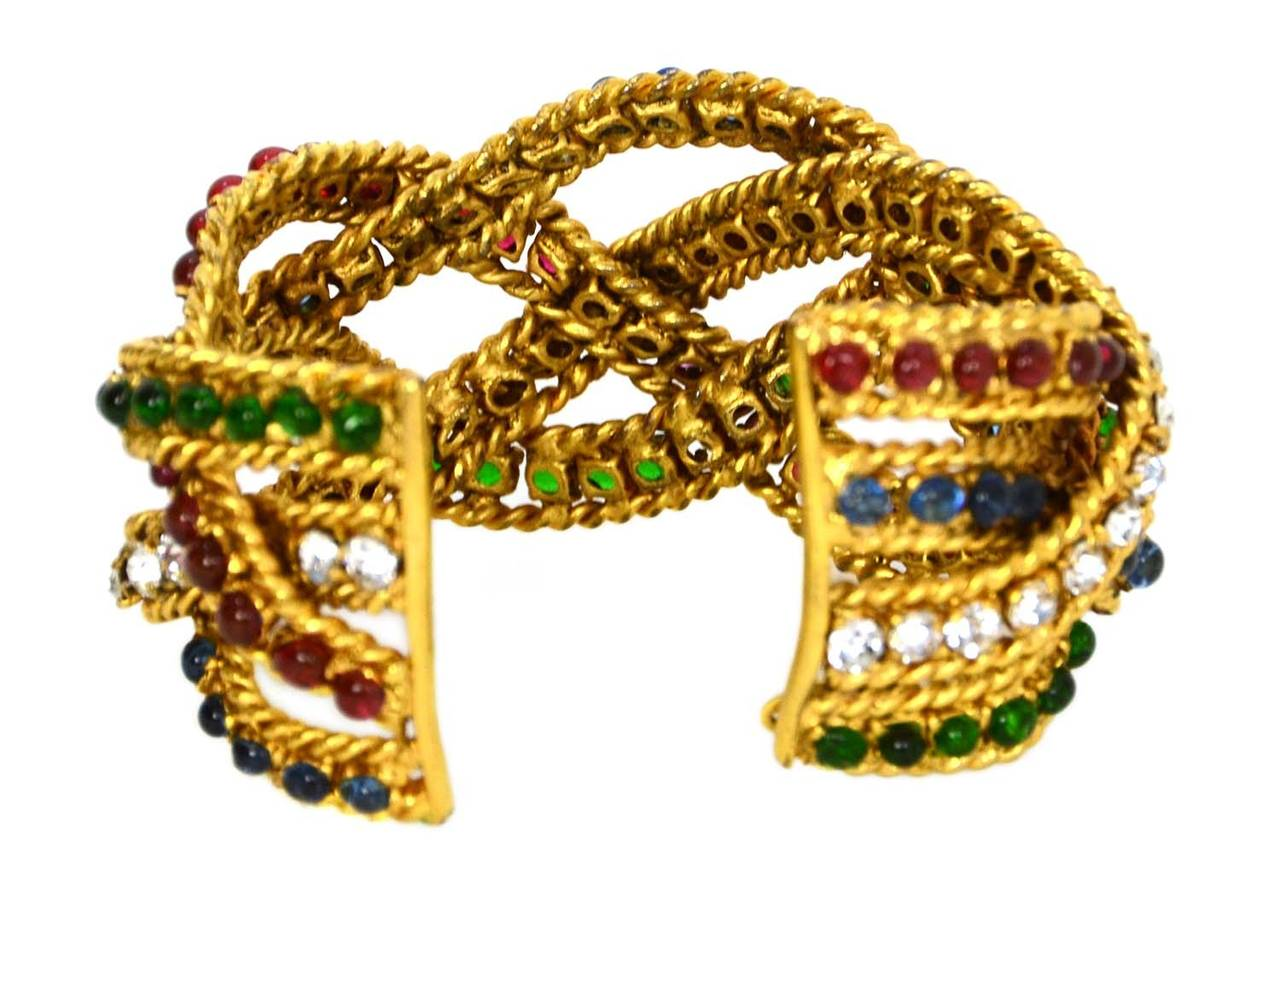 CHANEL Vintage Gripoix & Woven Gold Cuff Bracelet In Excellent Condition For Sale In New York, NY